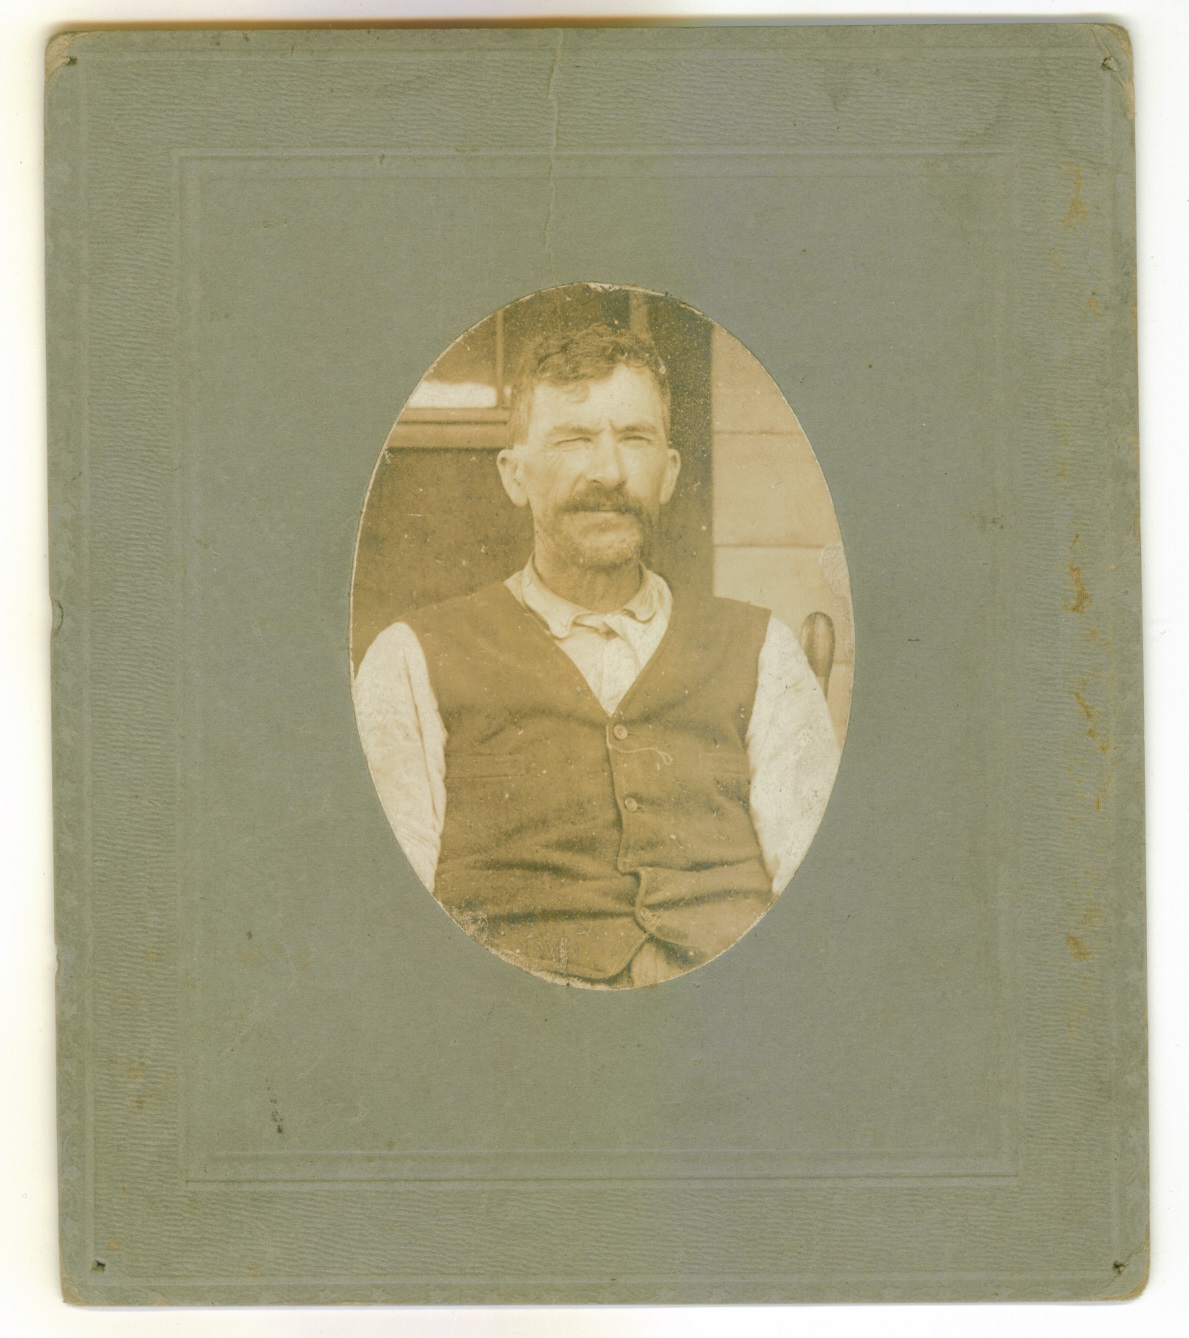 B&W photo of a middle aged man with short dark hair and a dark mustache, wearing a white long sleeved shirt and a dark vest, sitting in a chair.